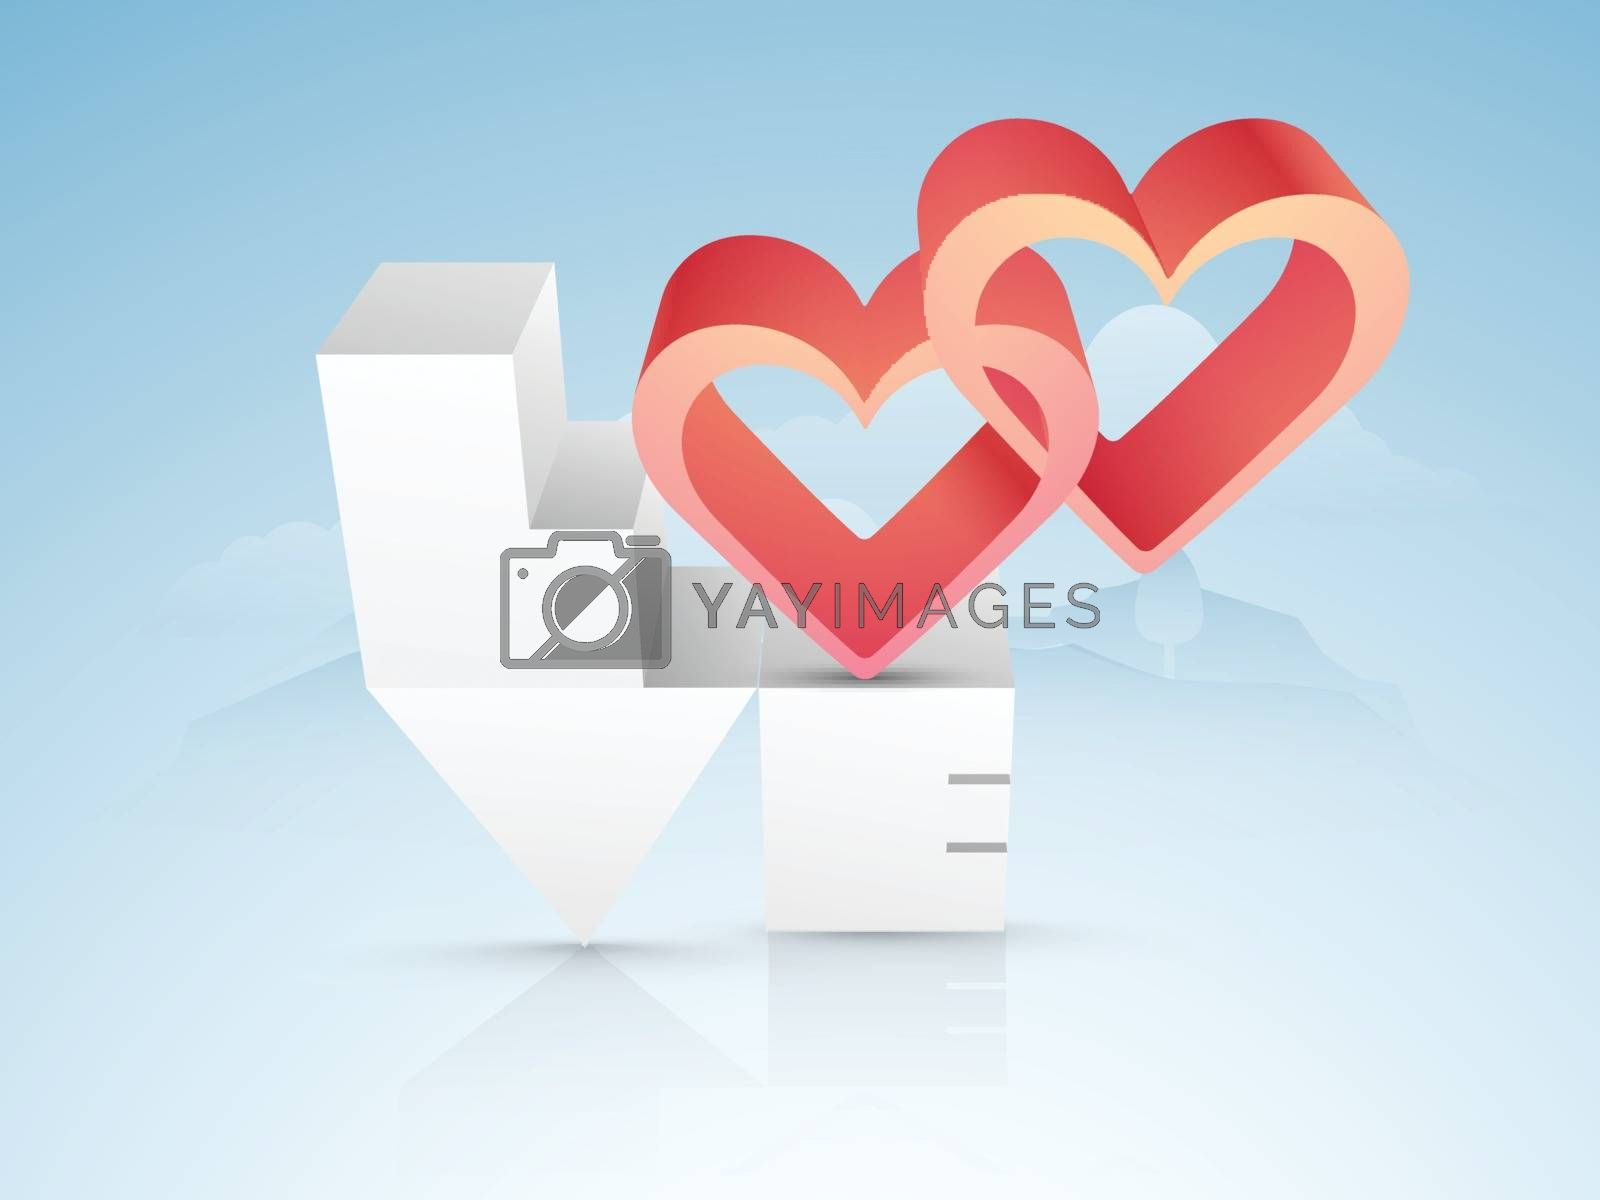 Creative 3D Text Love with Hearts on glossy background for Happy Valentine's Day celebration.